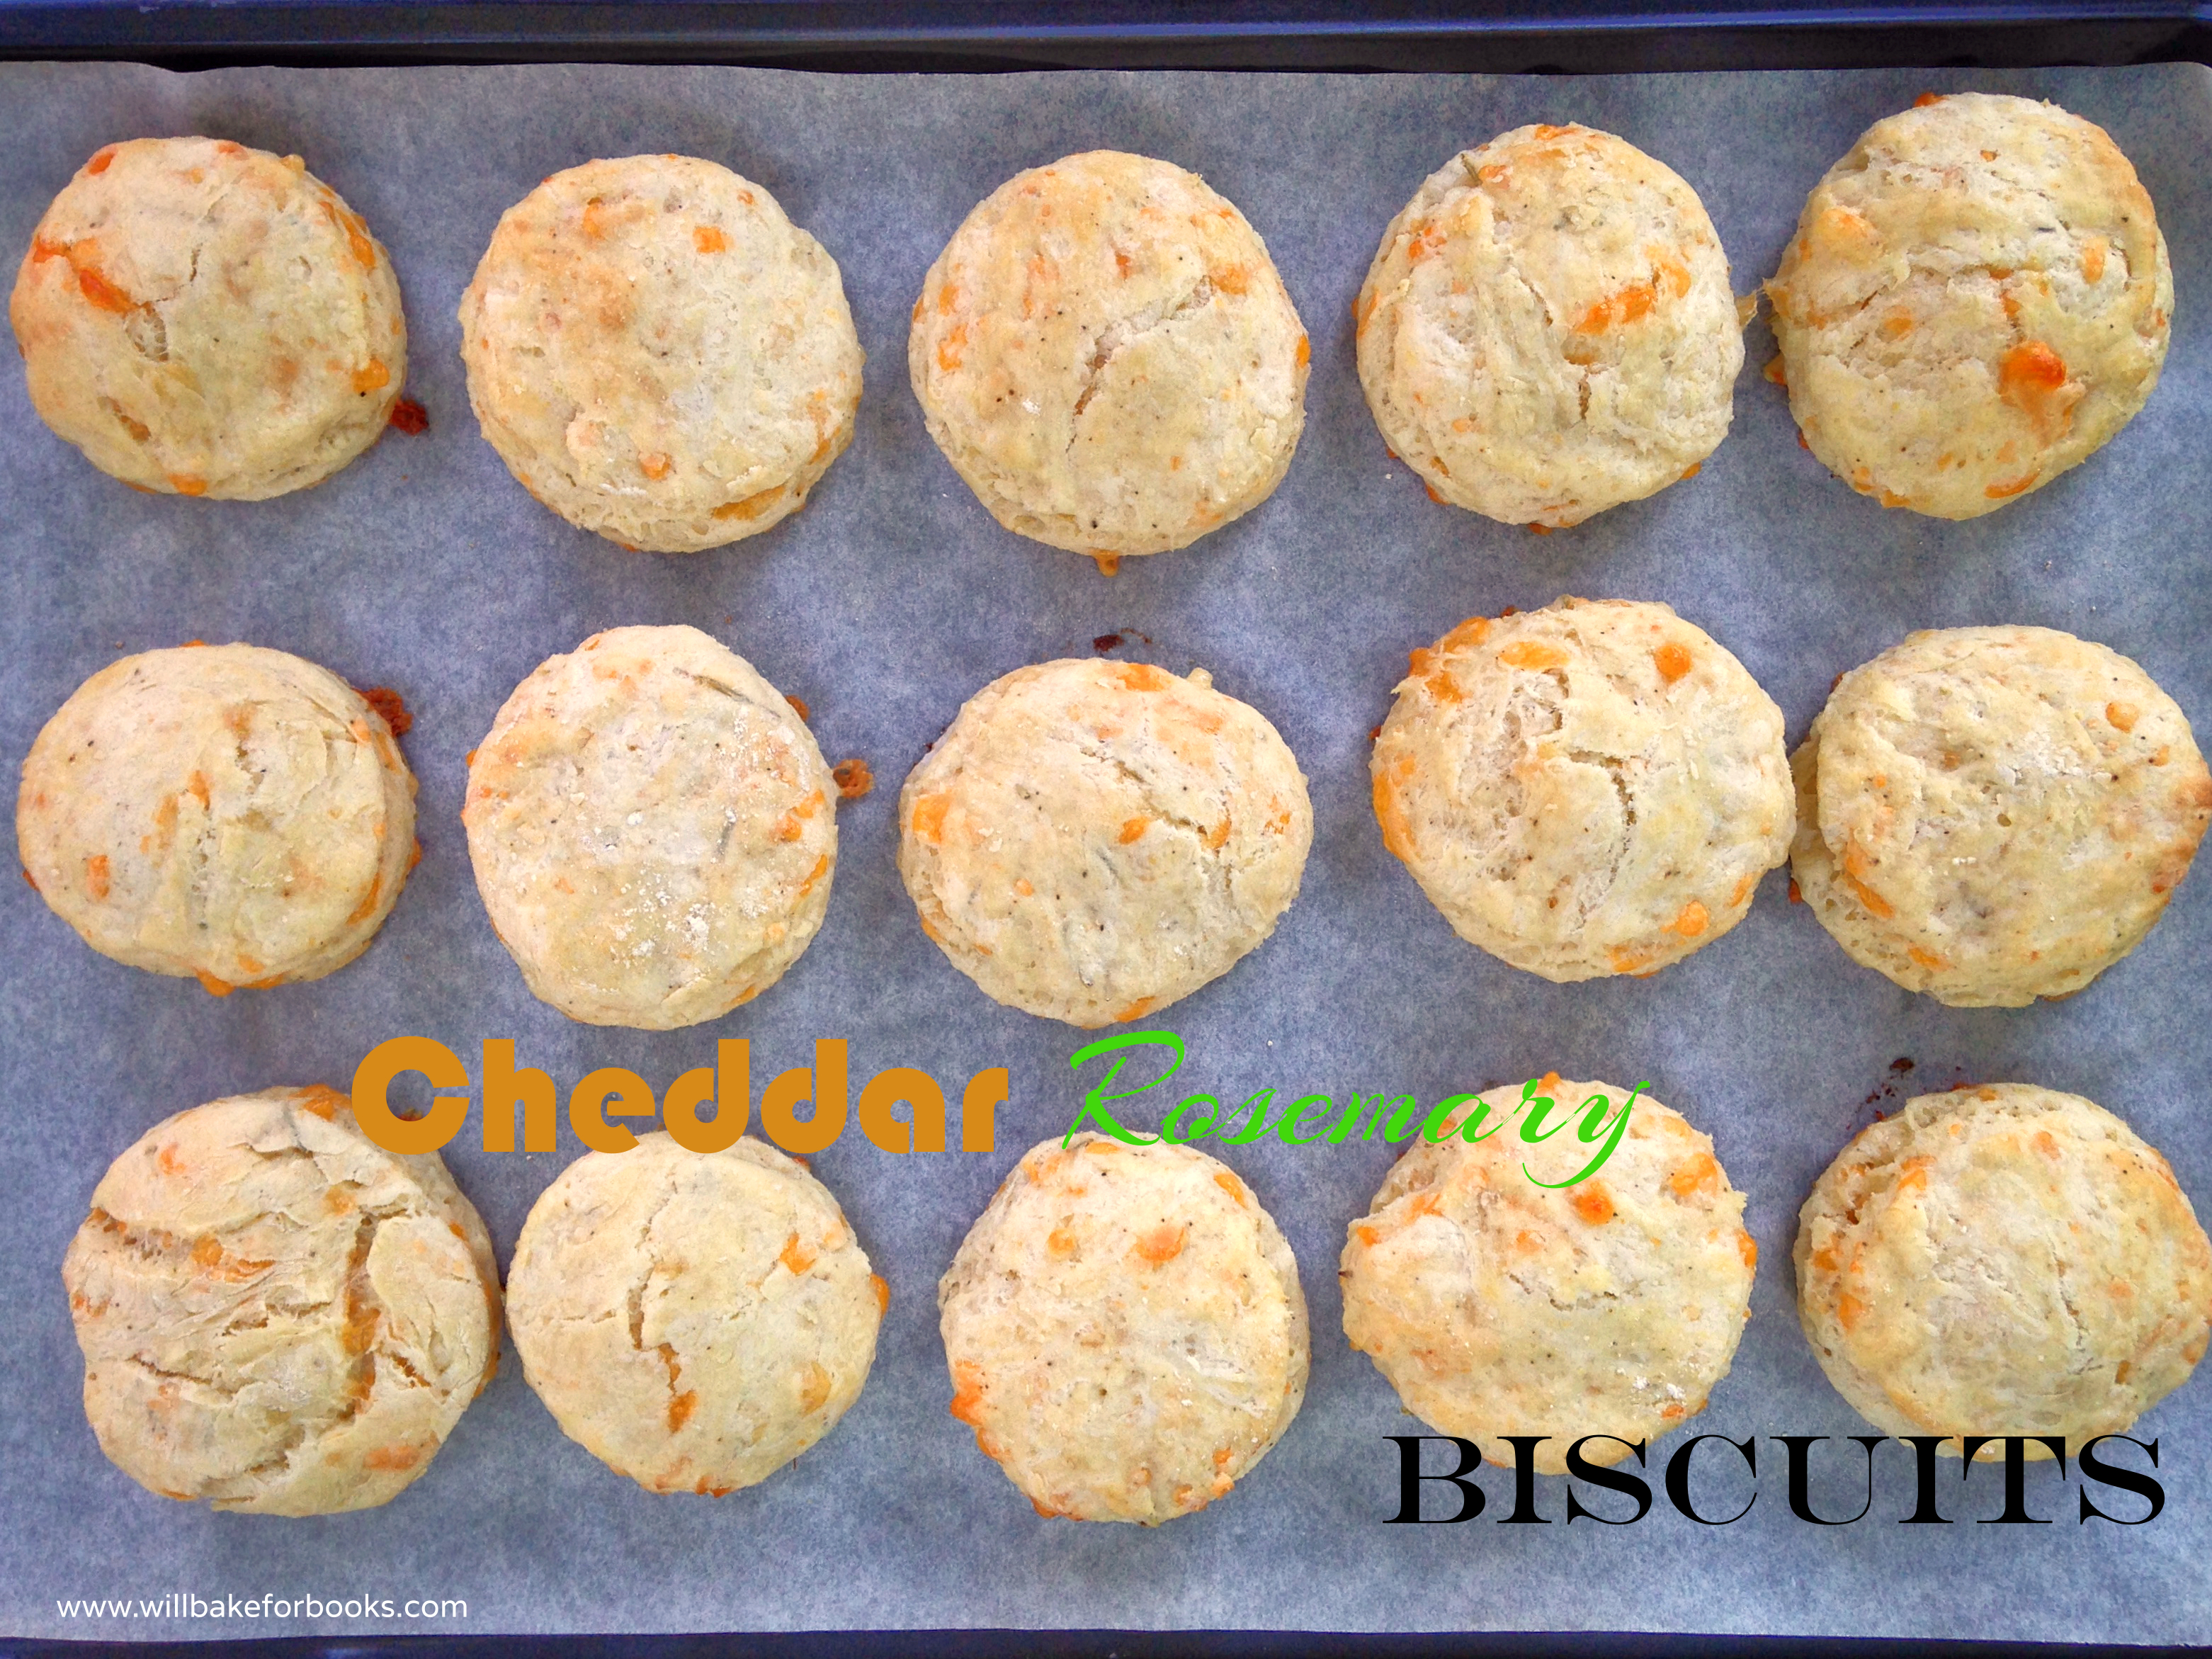 Cheddar Rosemary Biscuits from www.willbakeforbooks.com